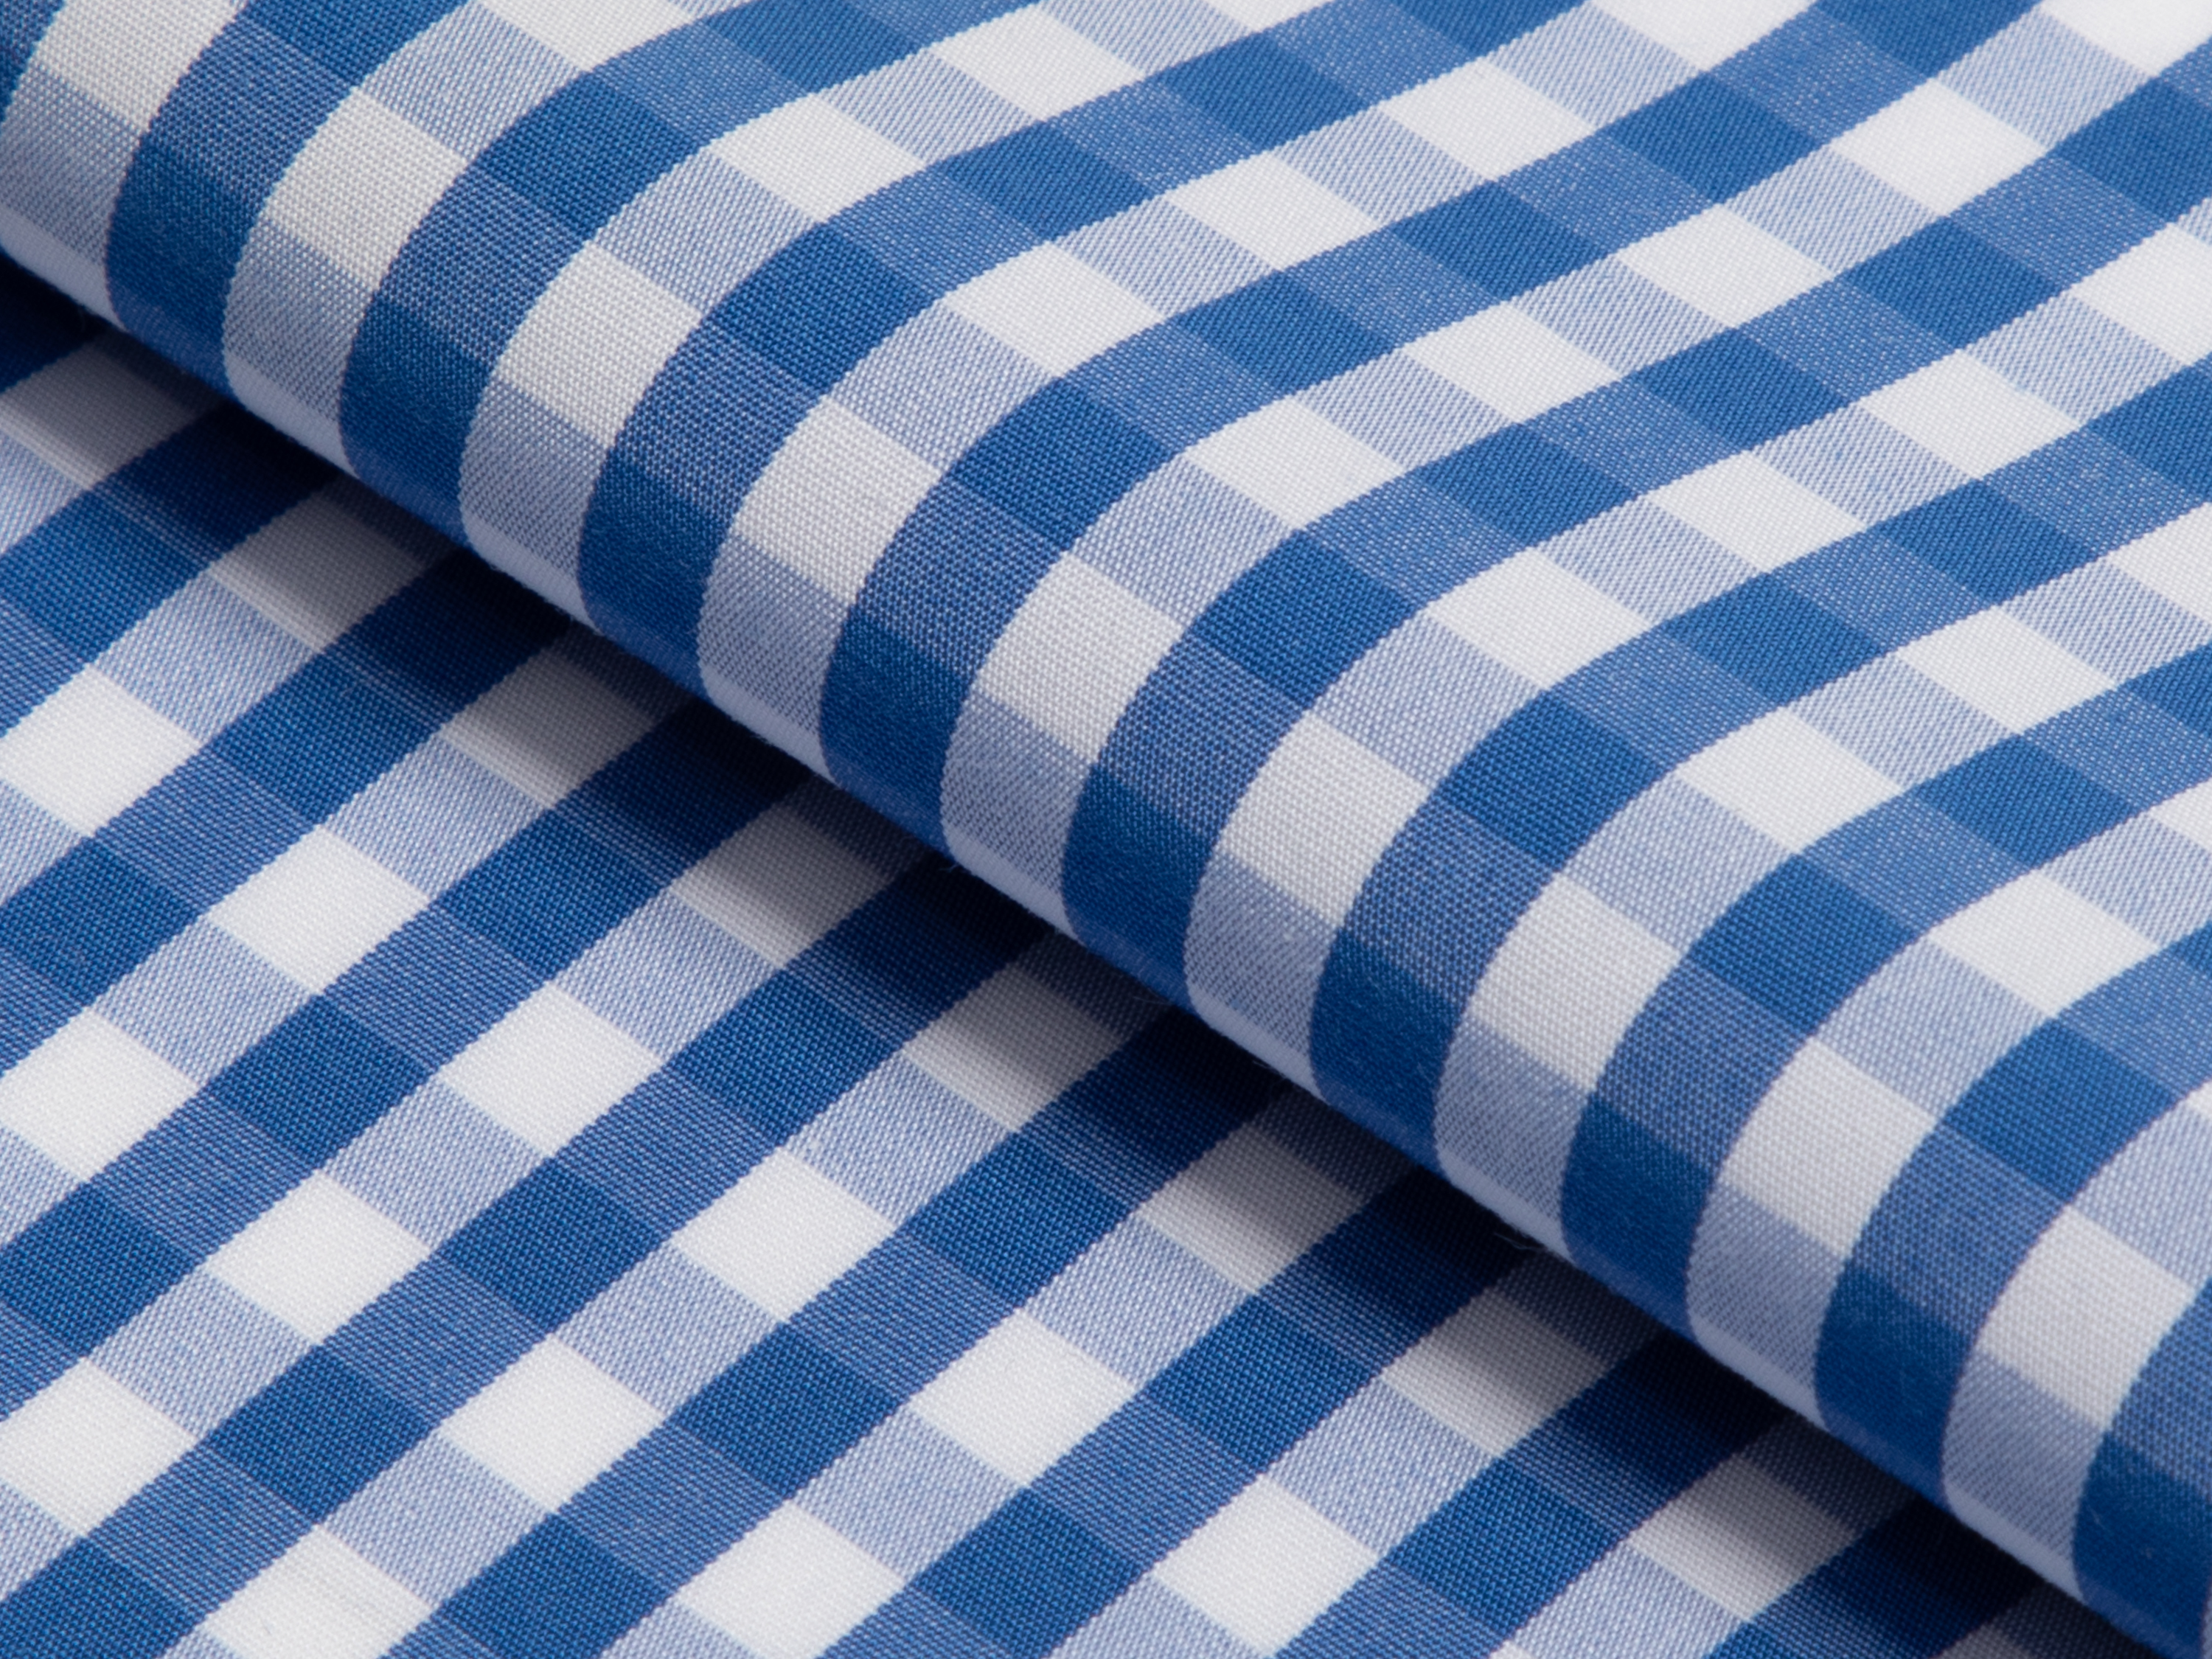 Buy tailor made shirts online - GINGHAM LUXURY (NEW) - Gingham Mid Blue